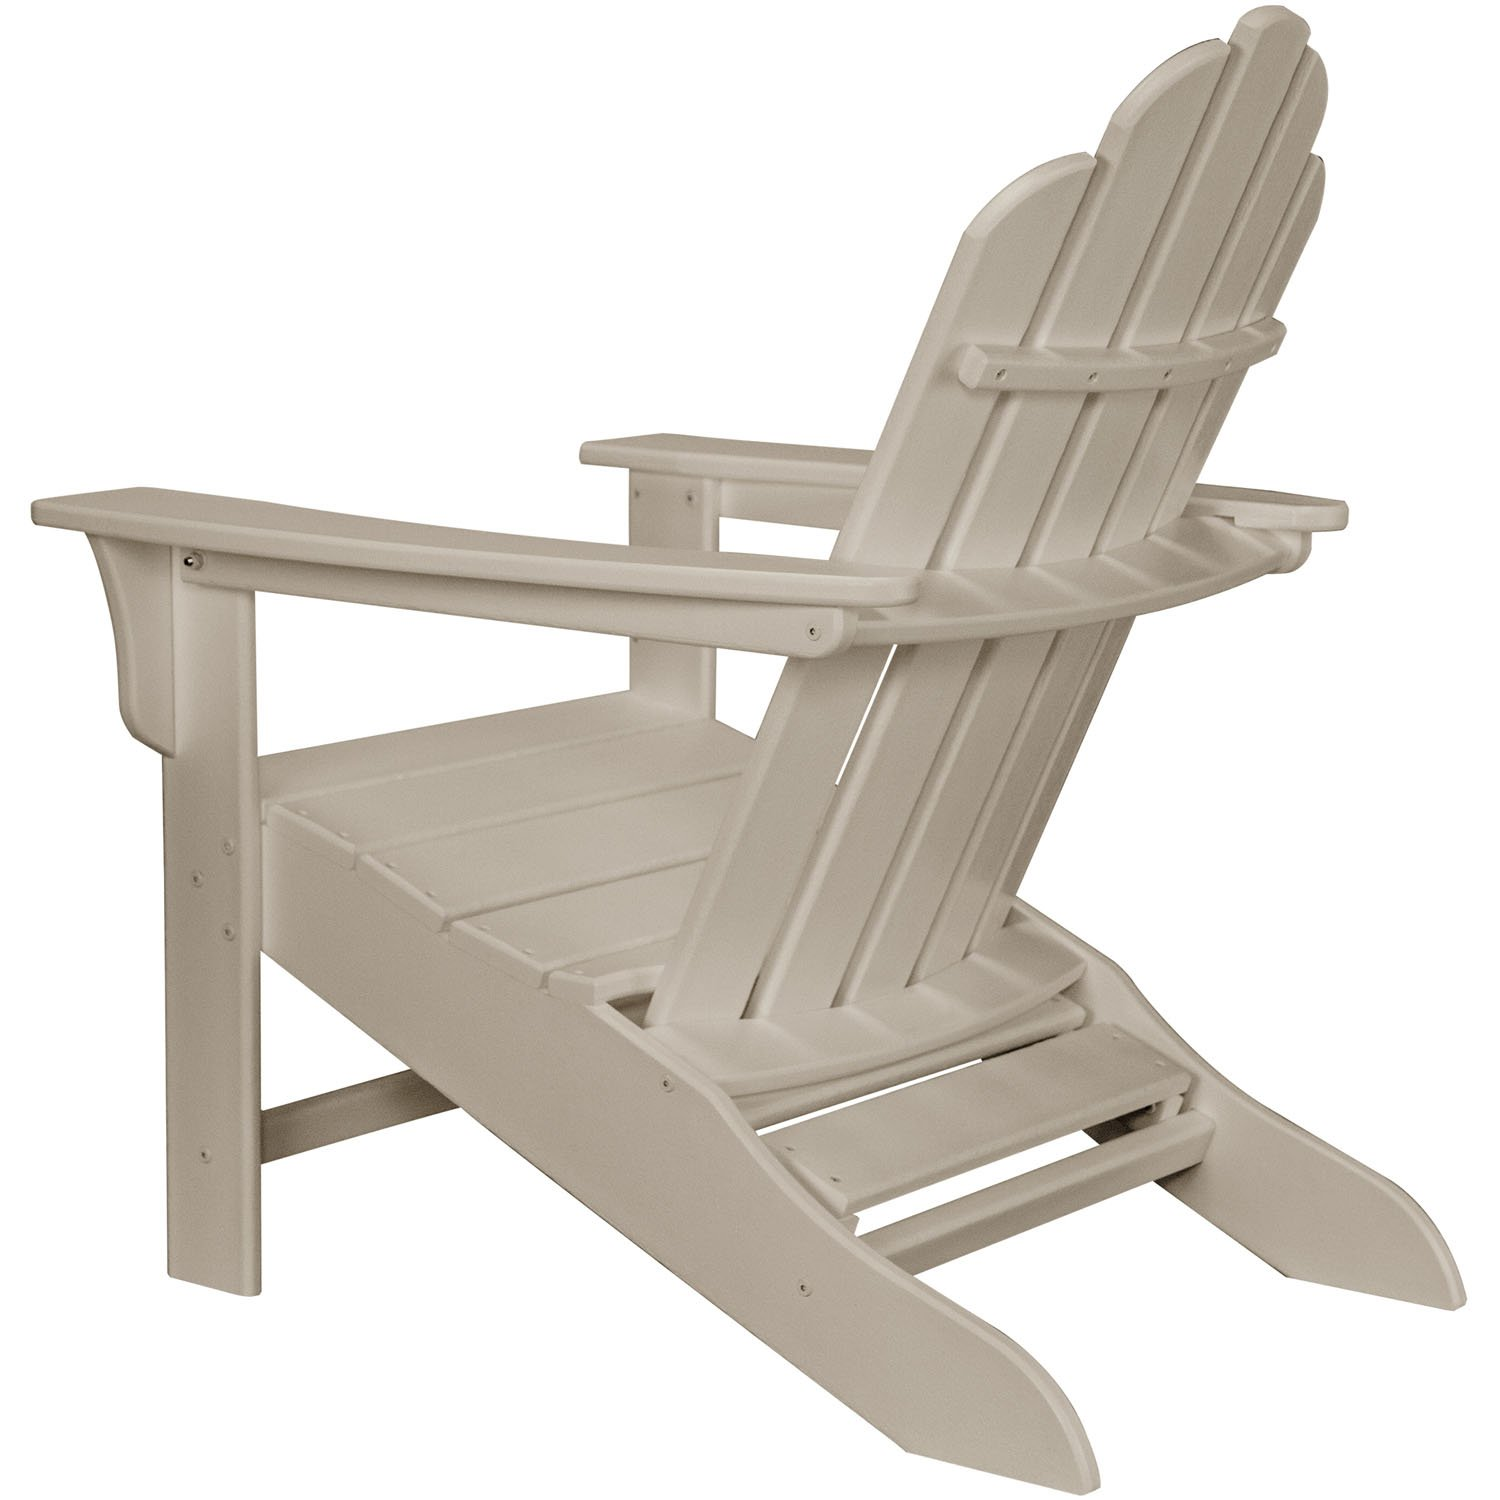 Hanover Outdoor Furniture HVLNA15AR All Weather Contoured Adirondack Chair with Hideaway Ottoman Aruba